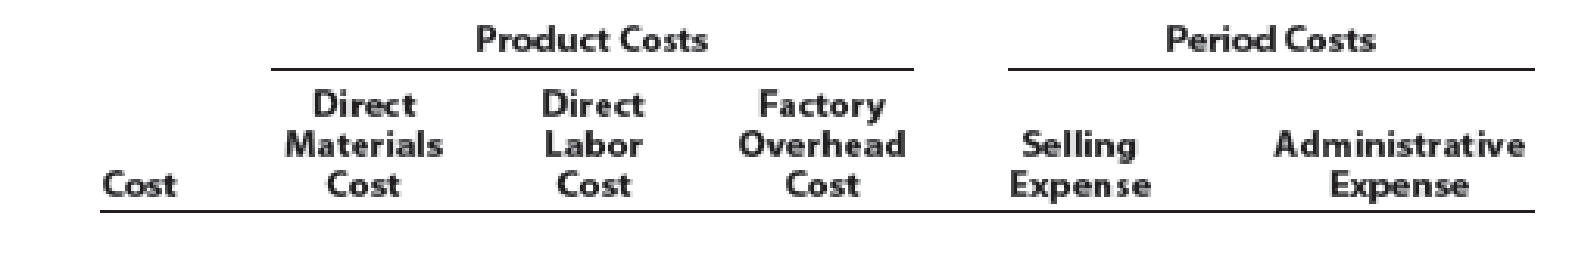 Chapter 1, Problem 1PB, The following is a list of costs that were incurred in the production and sale of lawn mowers: a.